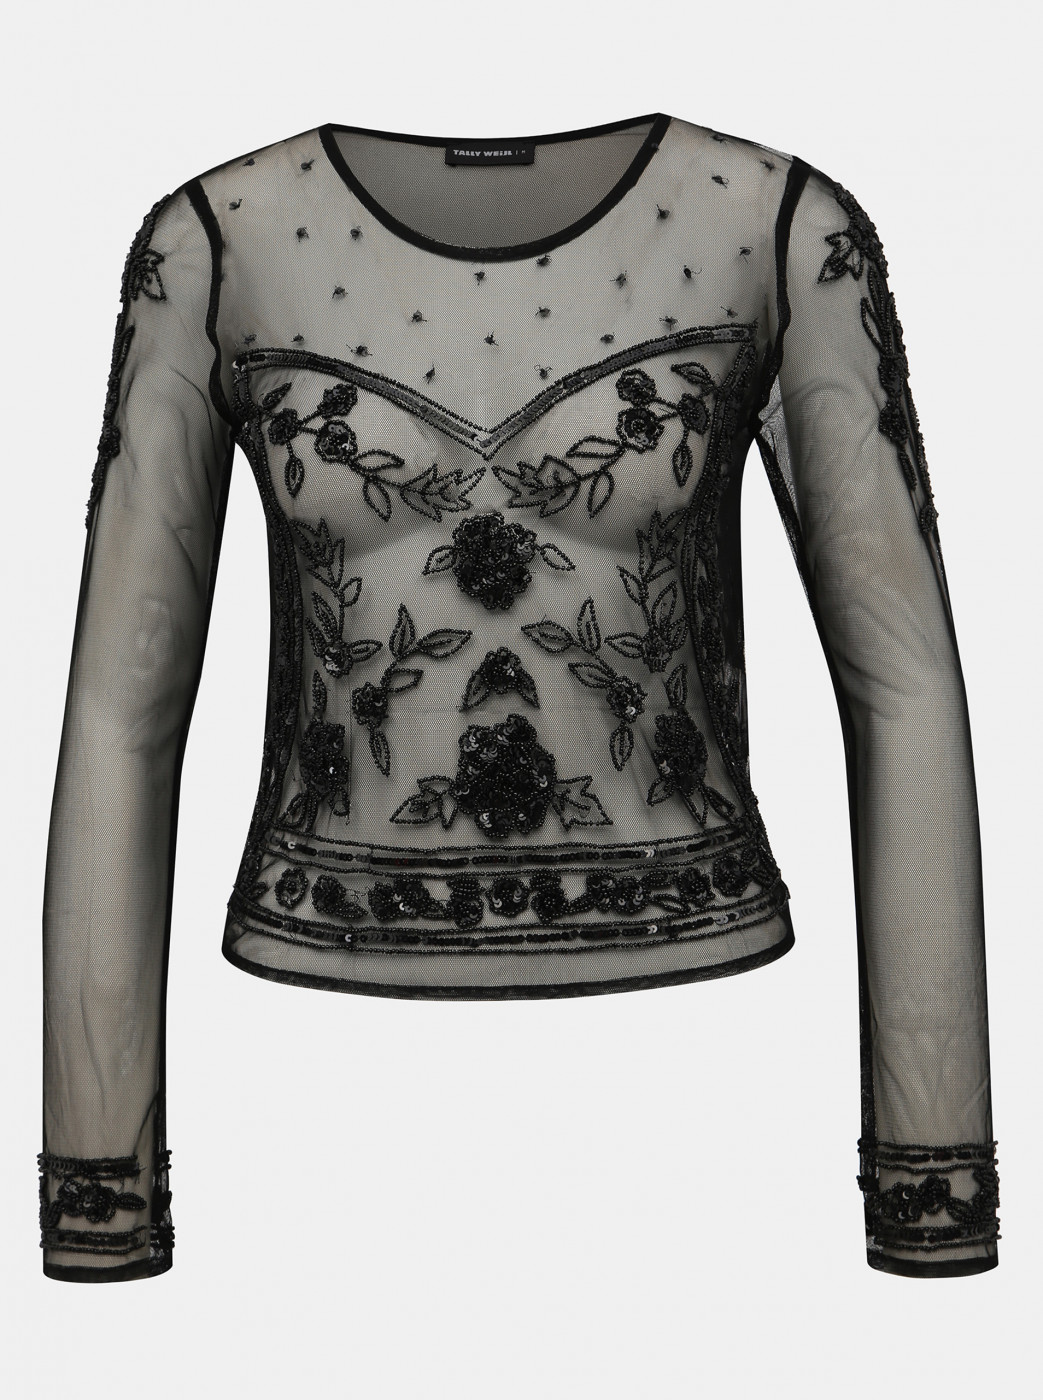 Black Translucent Blouse With Beads And Sequins Tally Weijl